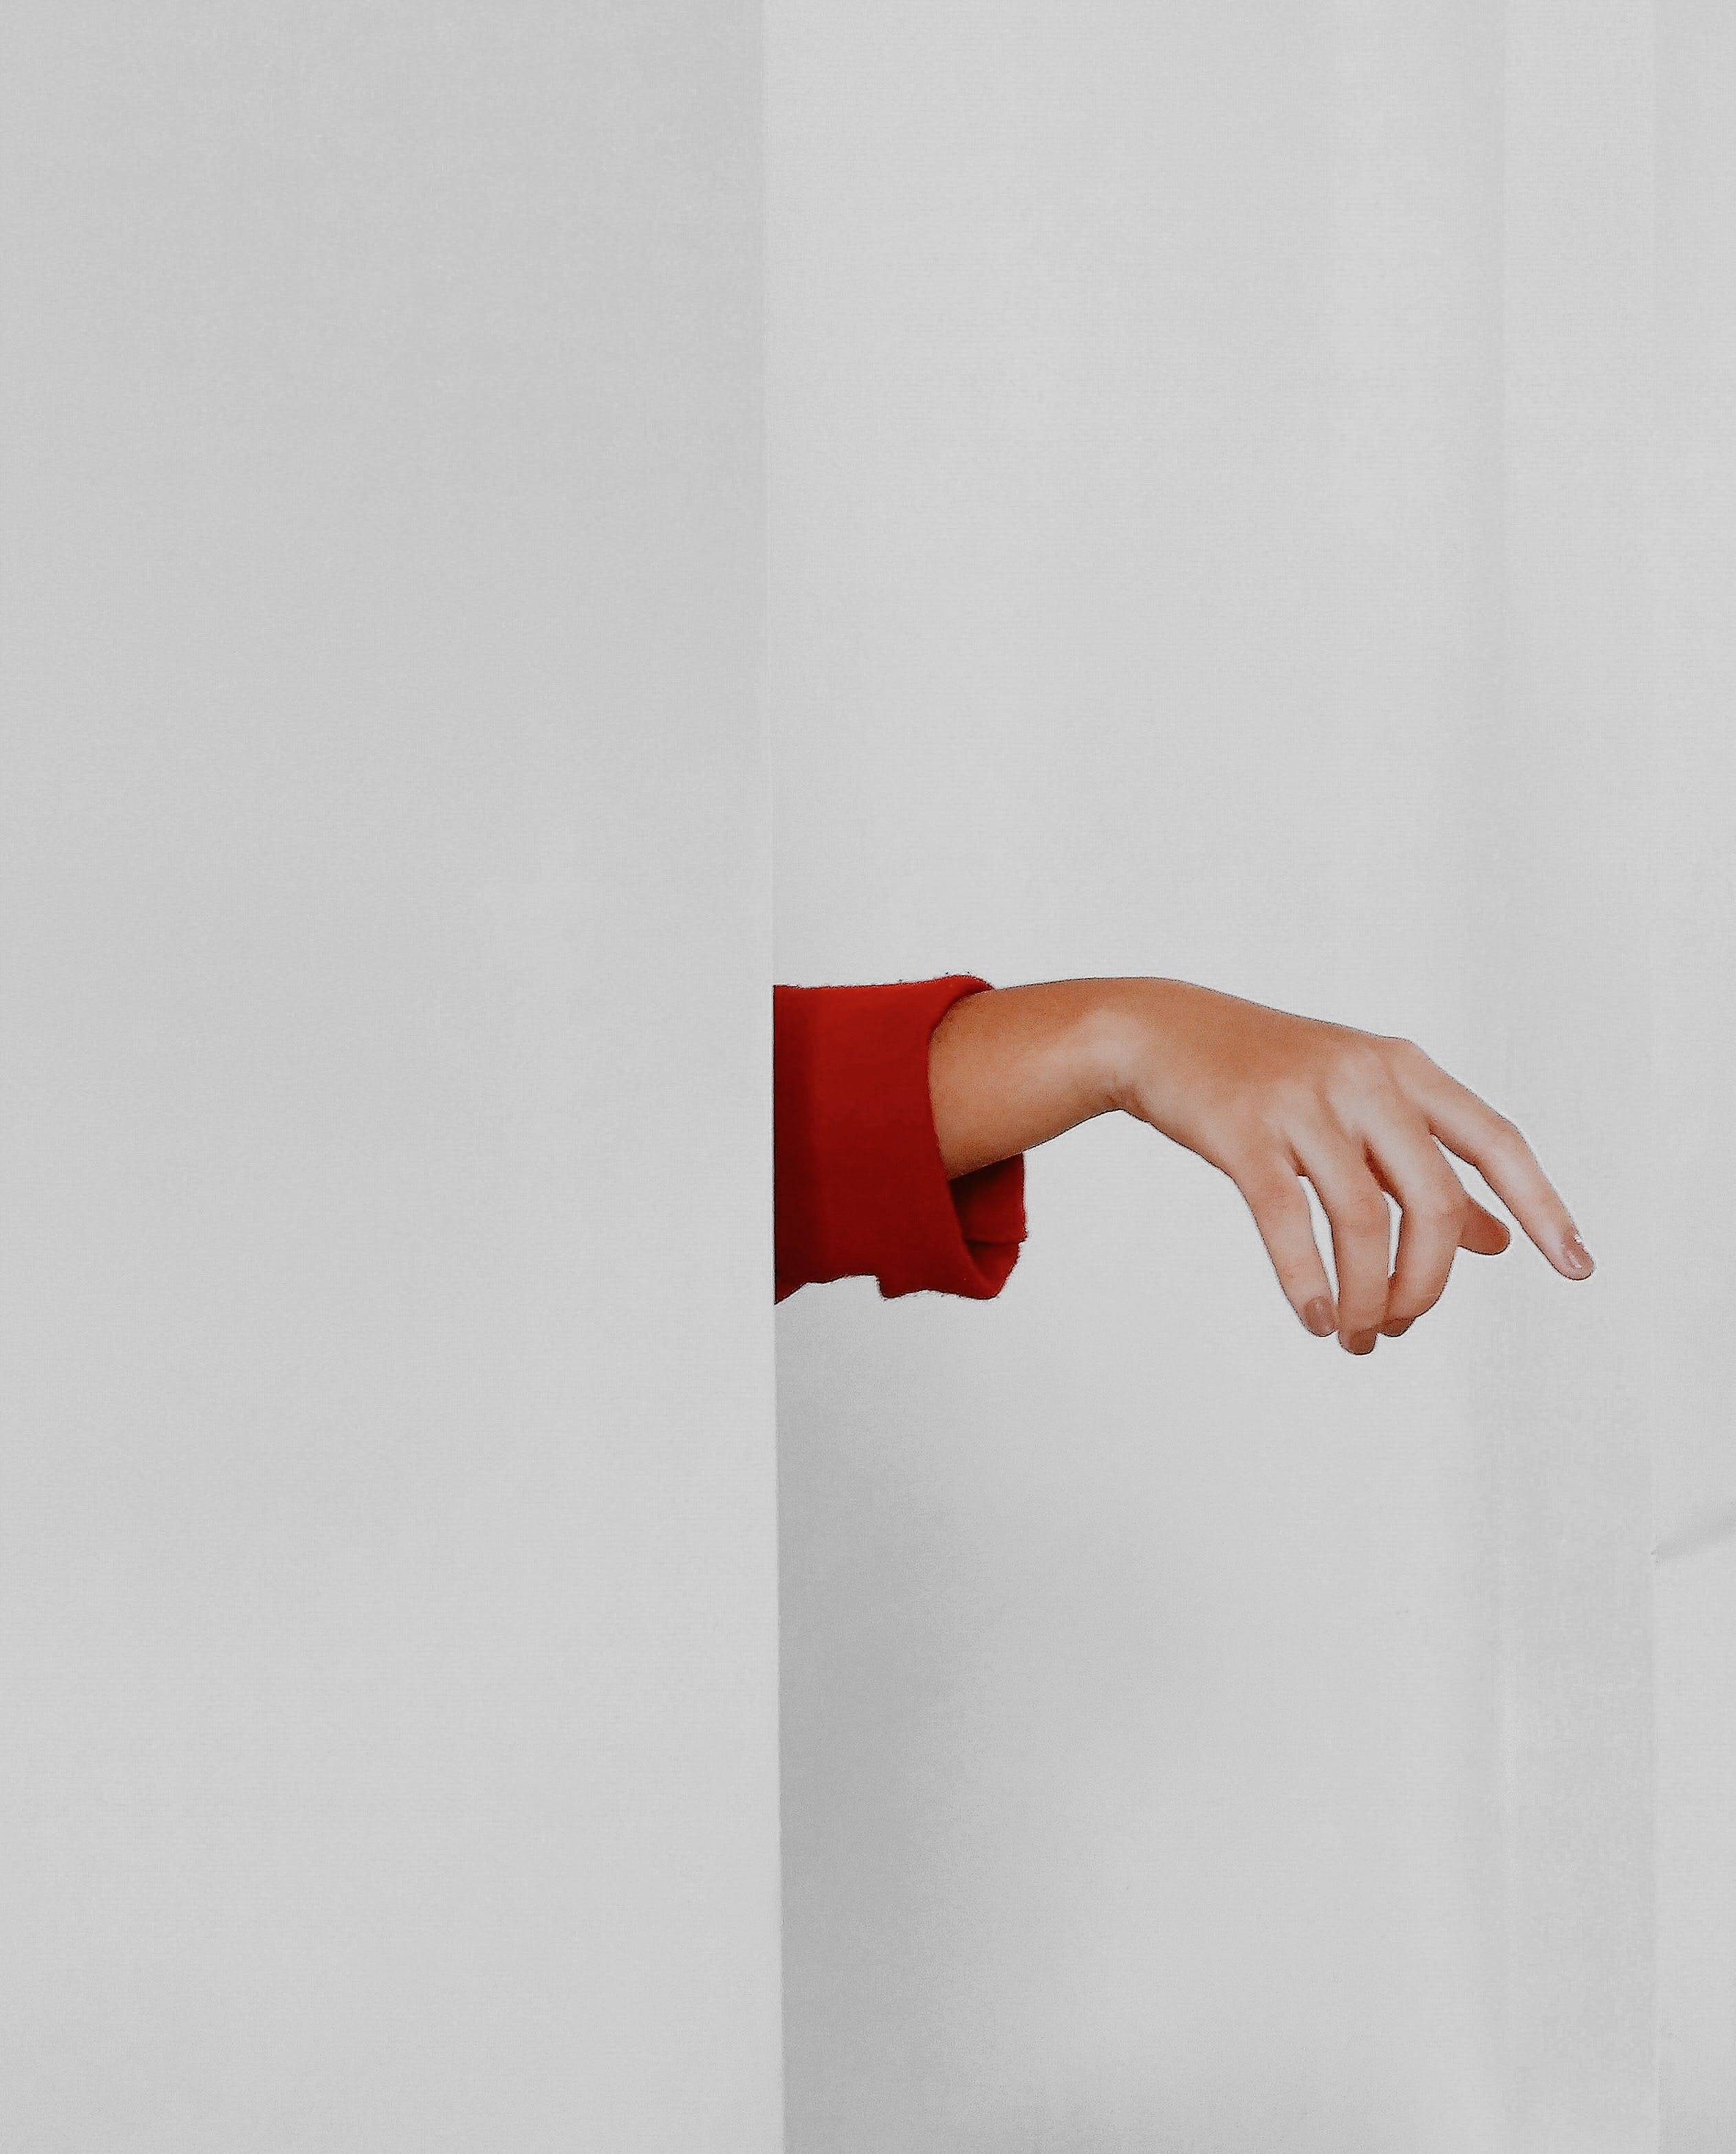 Right Human Hand Beside White Painted Wall